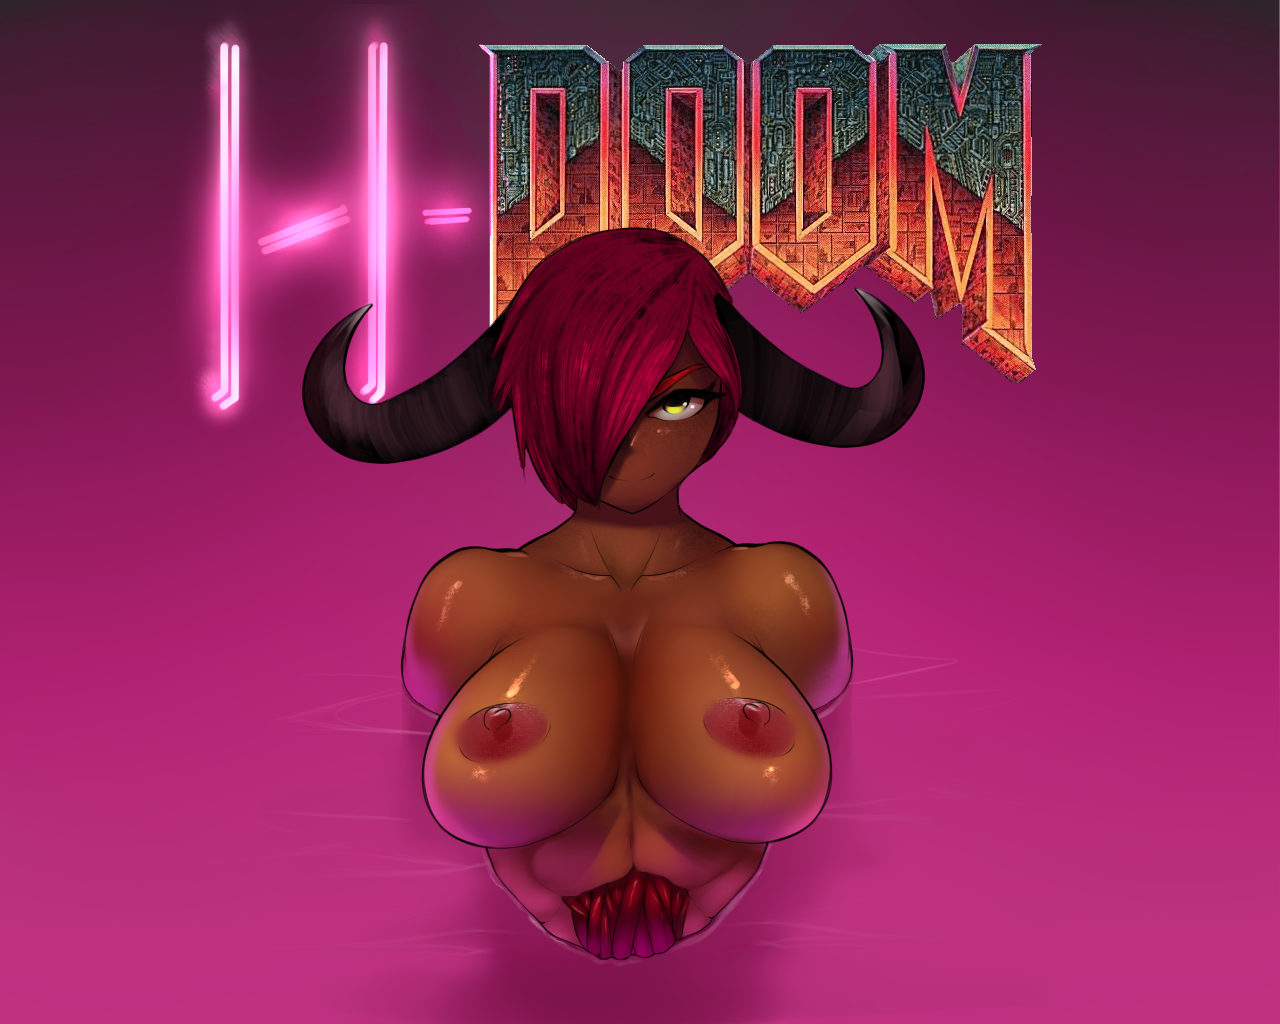 H-doom hentai hentai photo